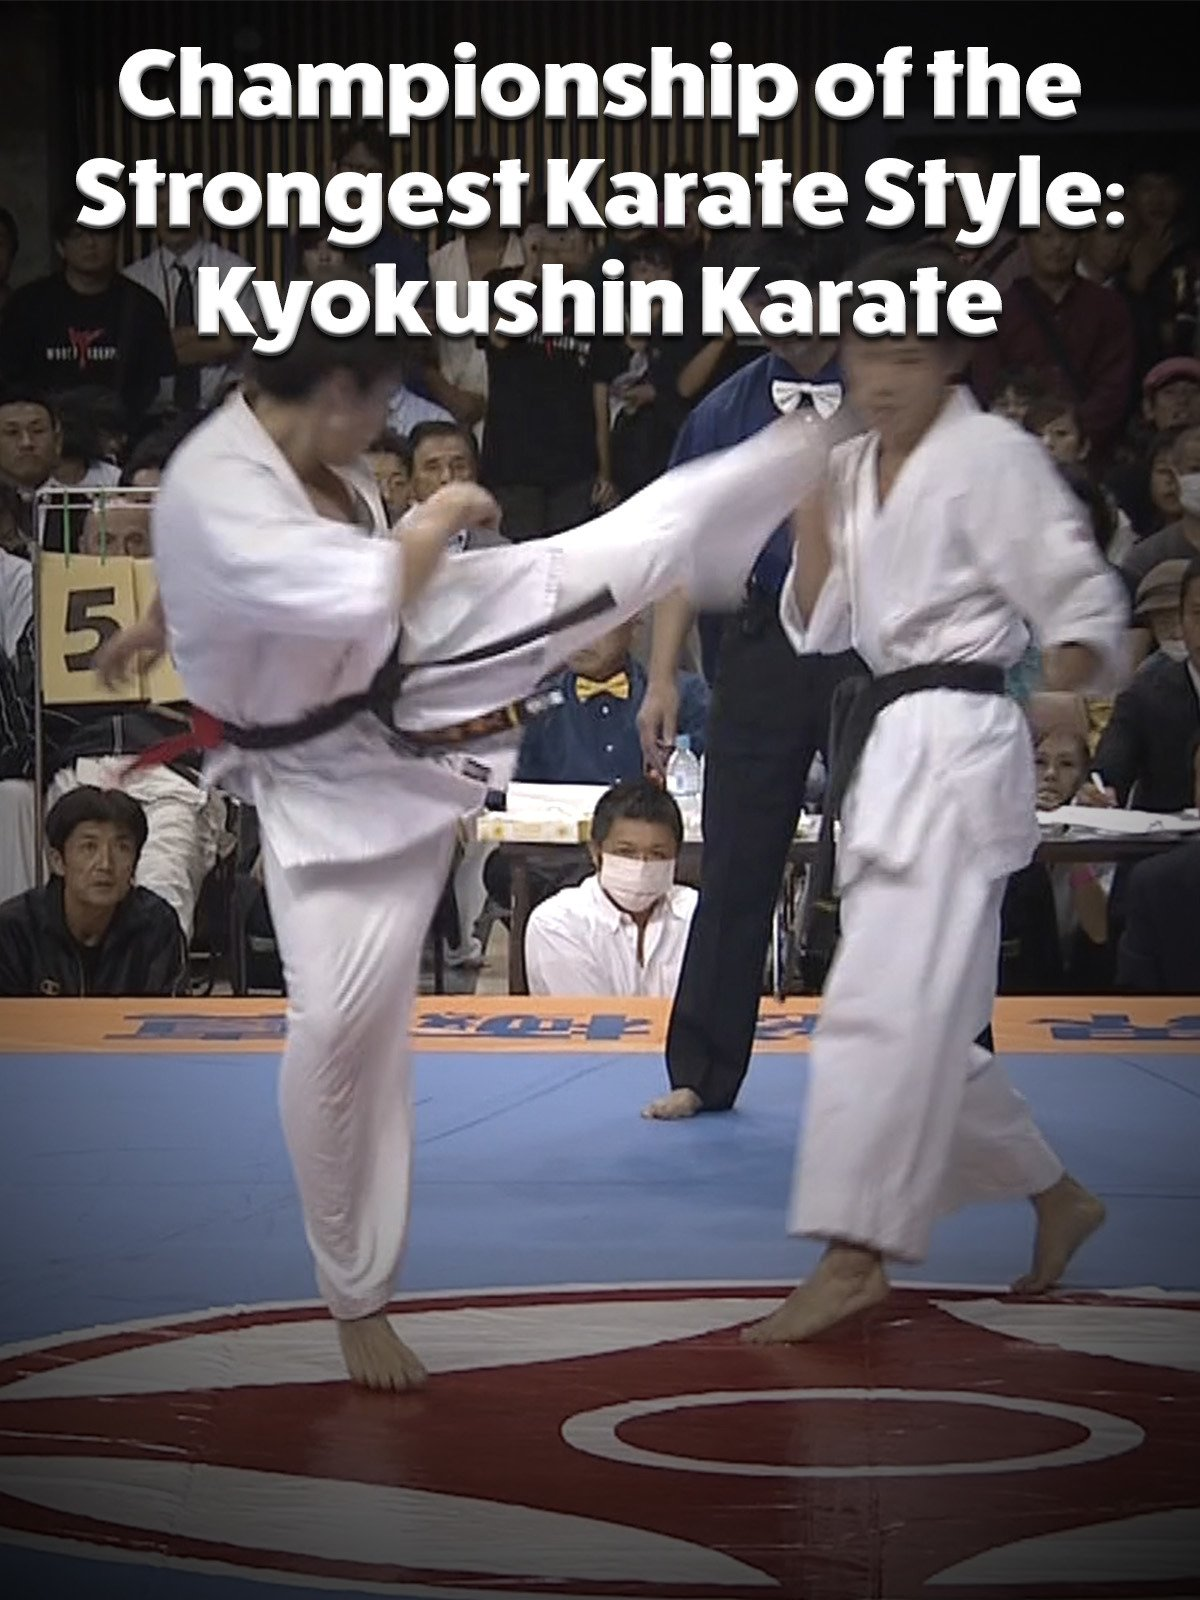 Championship of the Strongest Karate Style: Kyokushin Karate